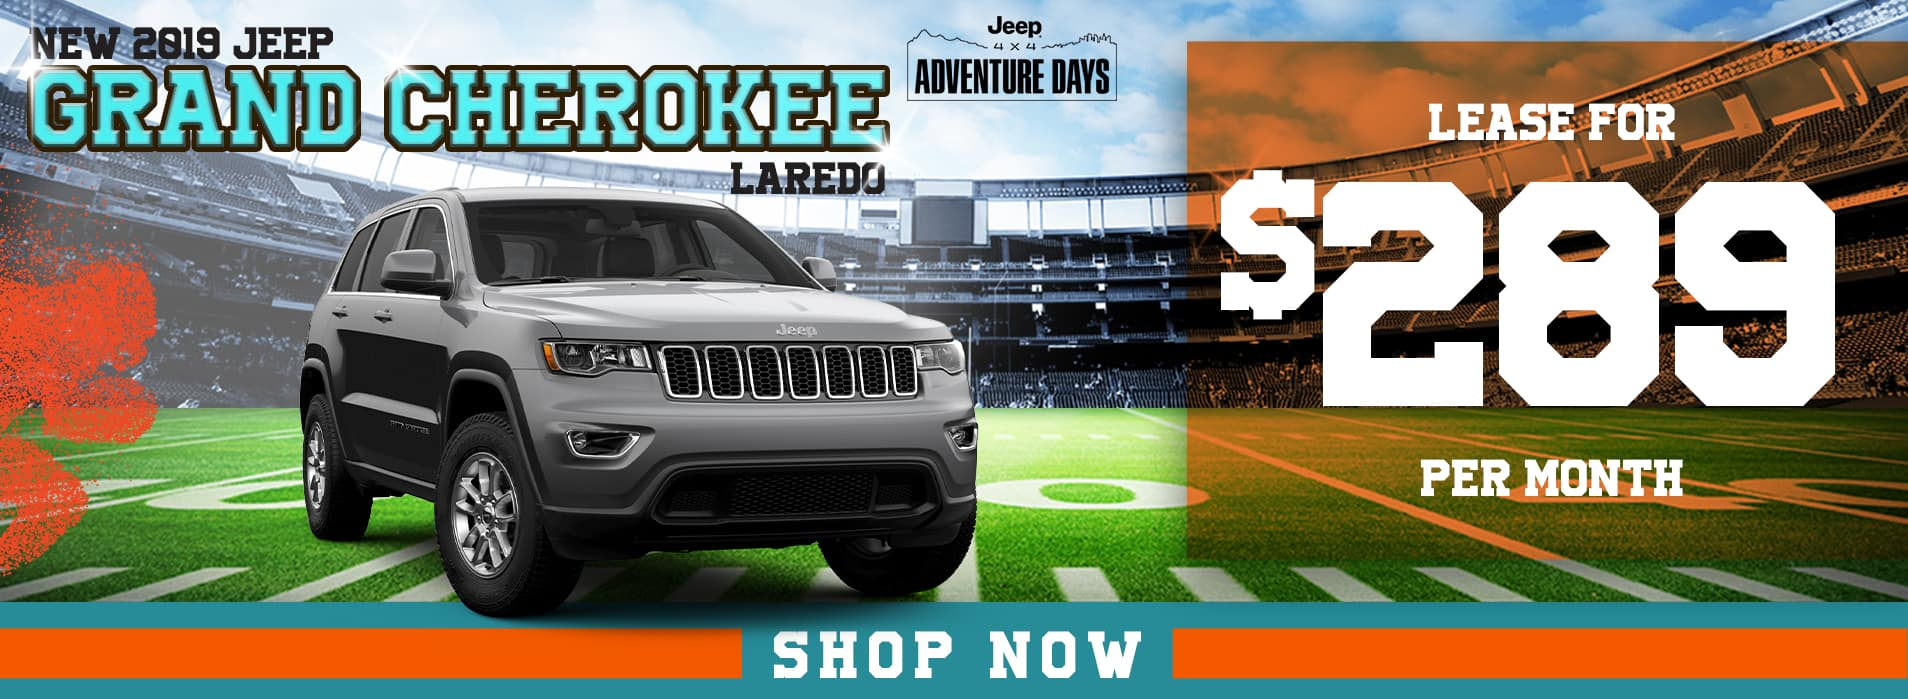 Grand Cherokee | Lease $289 per month